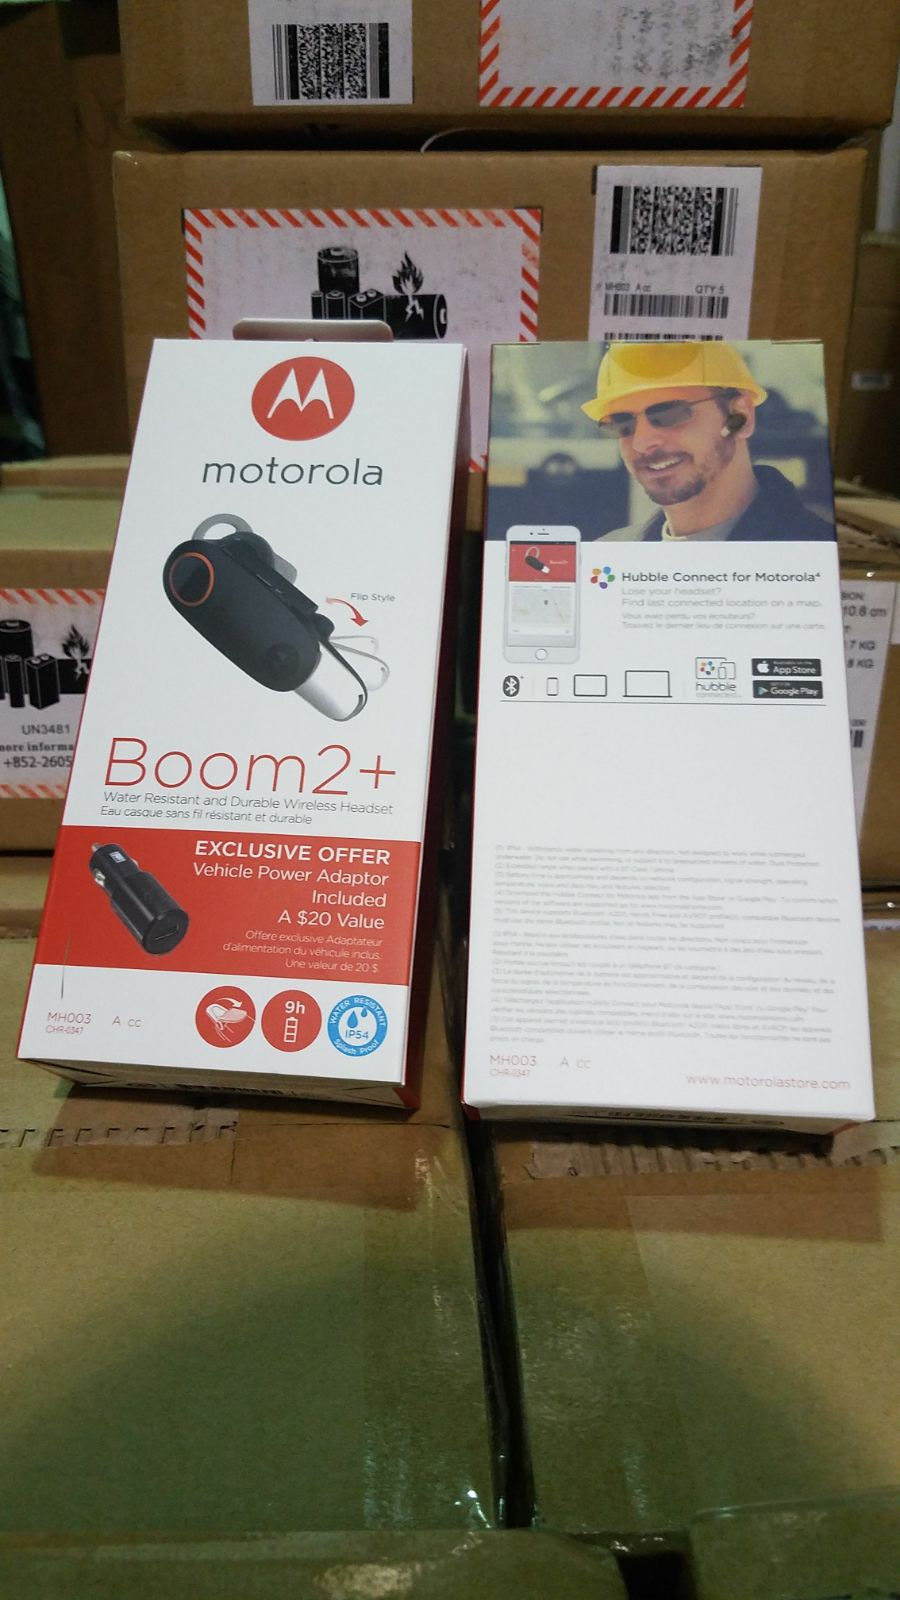 WTS: Motorola Boom2+ Bluetooth Heaset w/2.0A Car Adapter Combo. Specs: 300ft range, IP54 Water Resistant, Over 9hrs talk time. @GLI